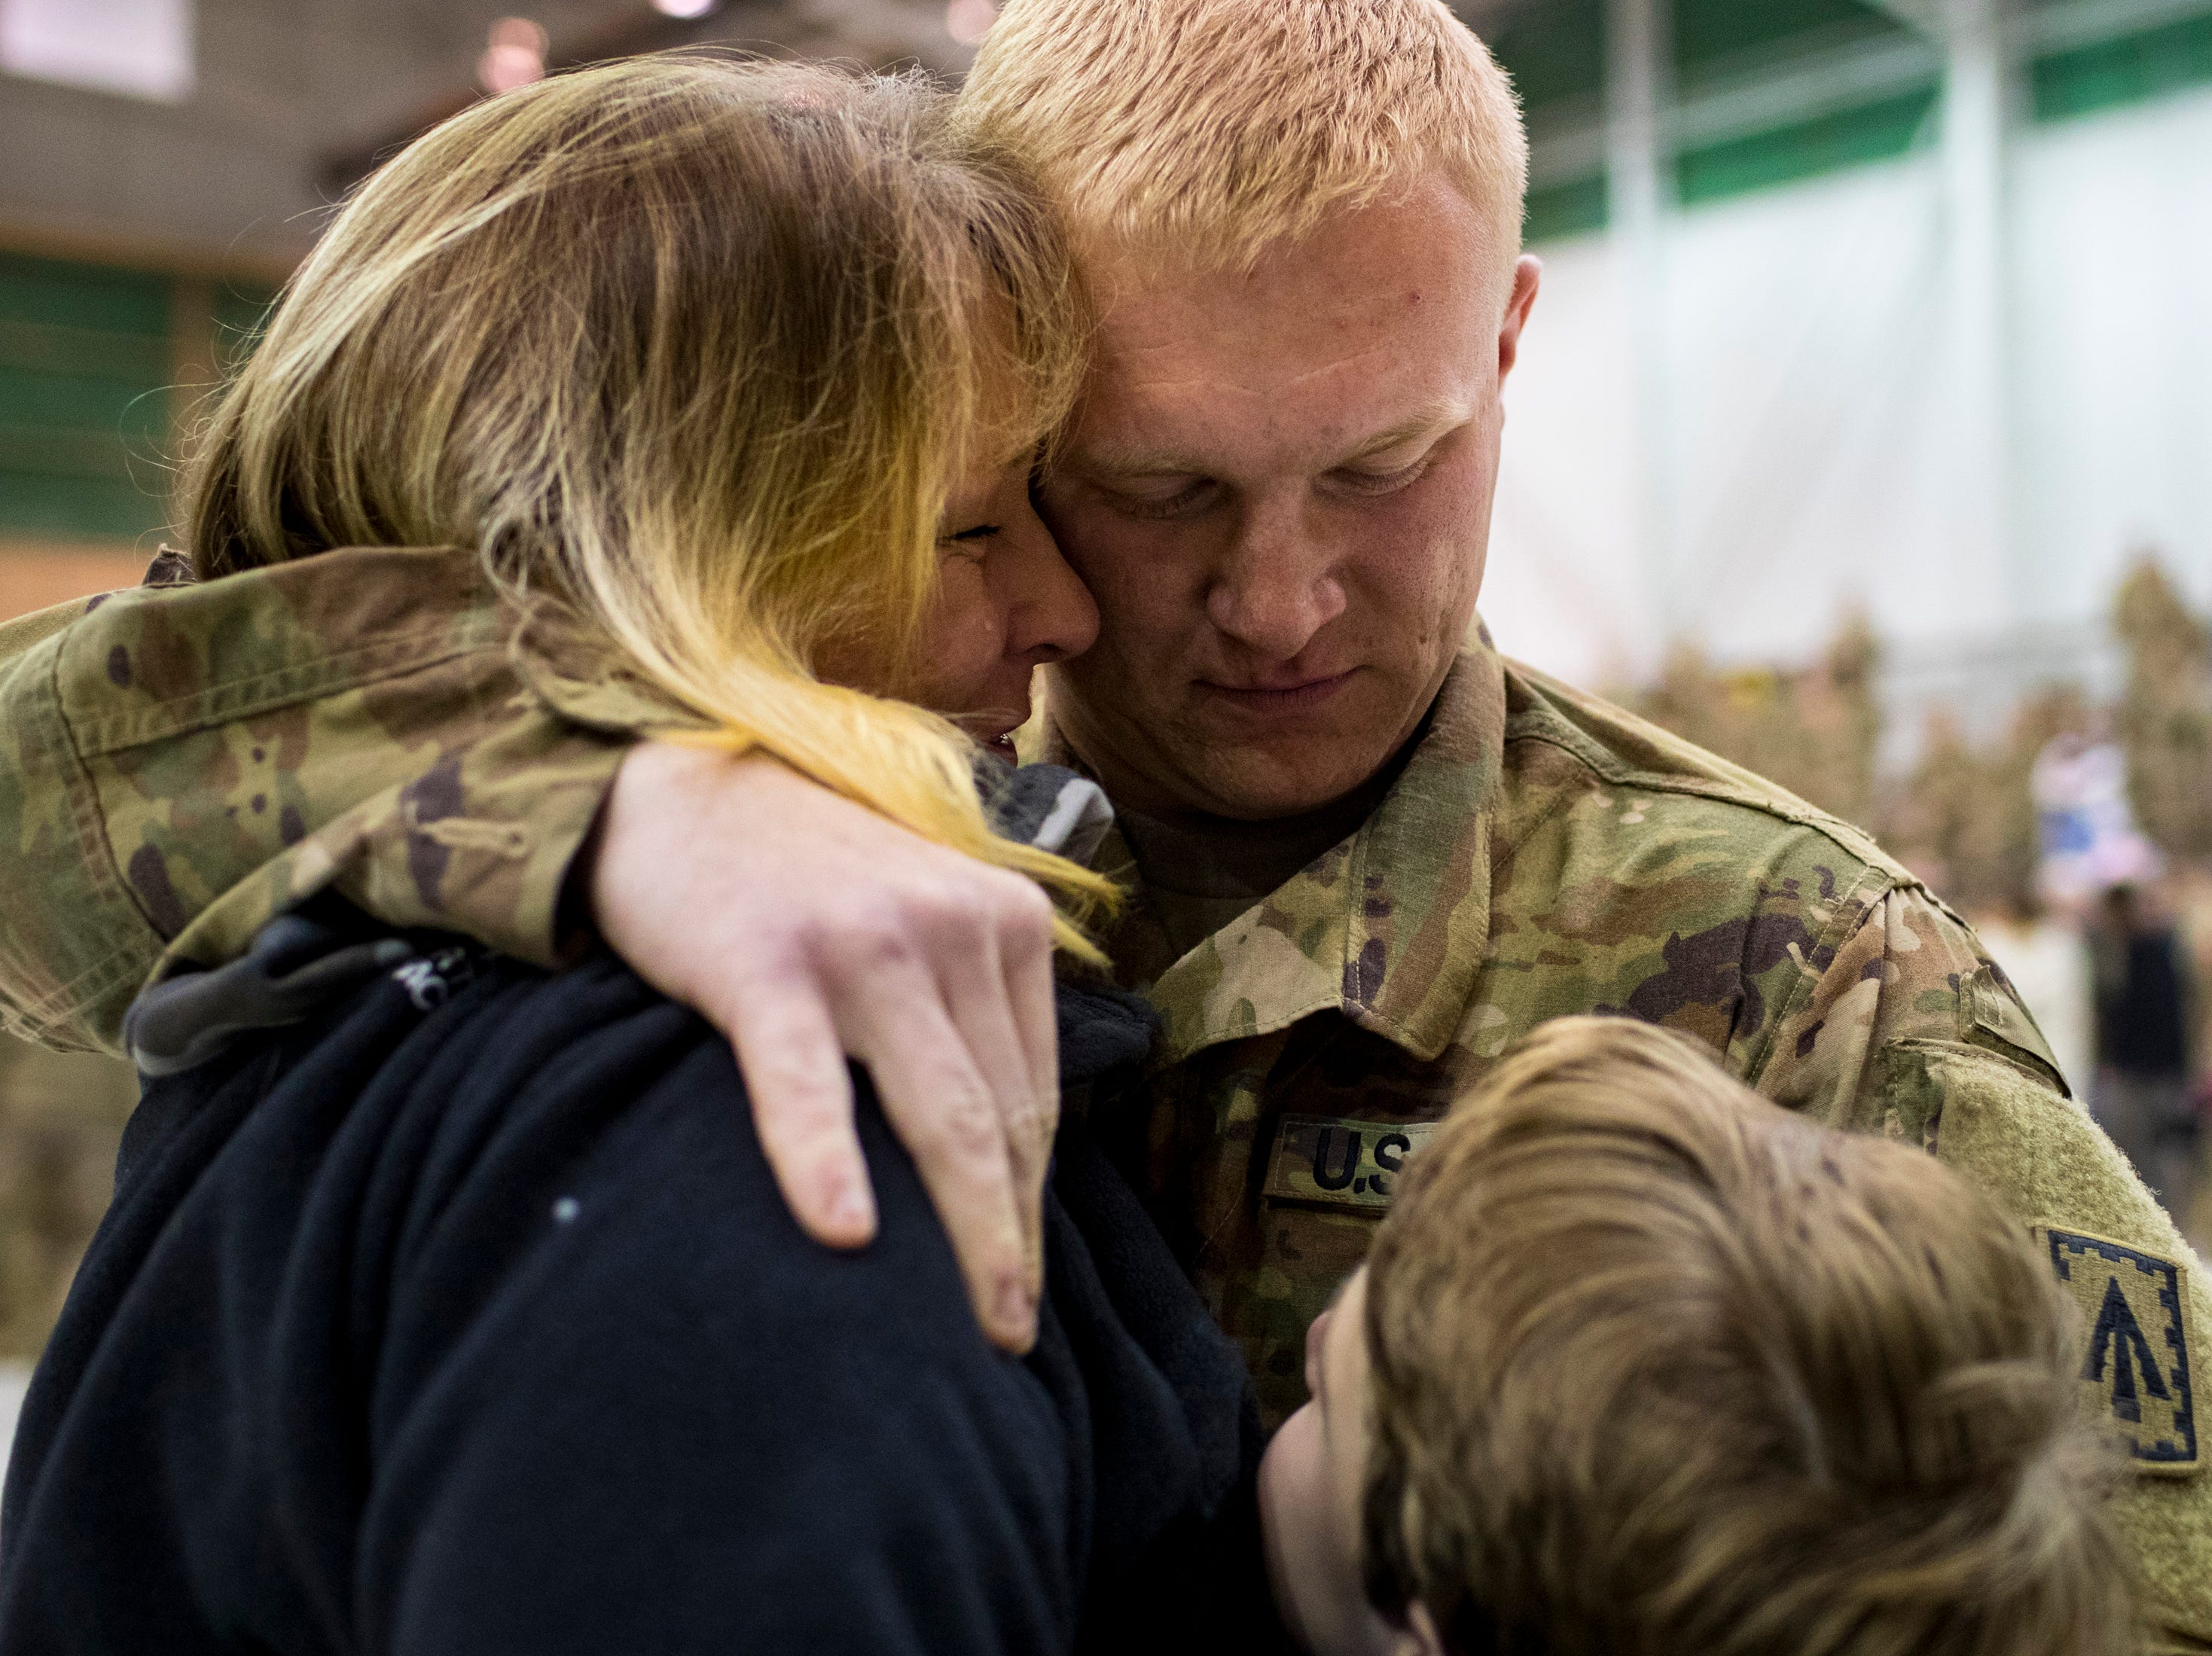 Nickolas Lack, Shawna Lack, and Nathan Lack, 11, embrace during the welcome home ceremony for the 2nd Battalion, 44th Air Defense Artillery Regiment and 101st Airborne Division at Fort Campbell in the early hours of Monday, Nov. 19, 2018. The soldiers were returning from a 9-month deployment in Afghanistan.